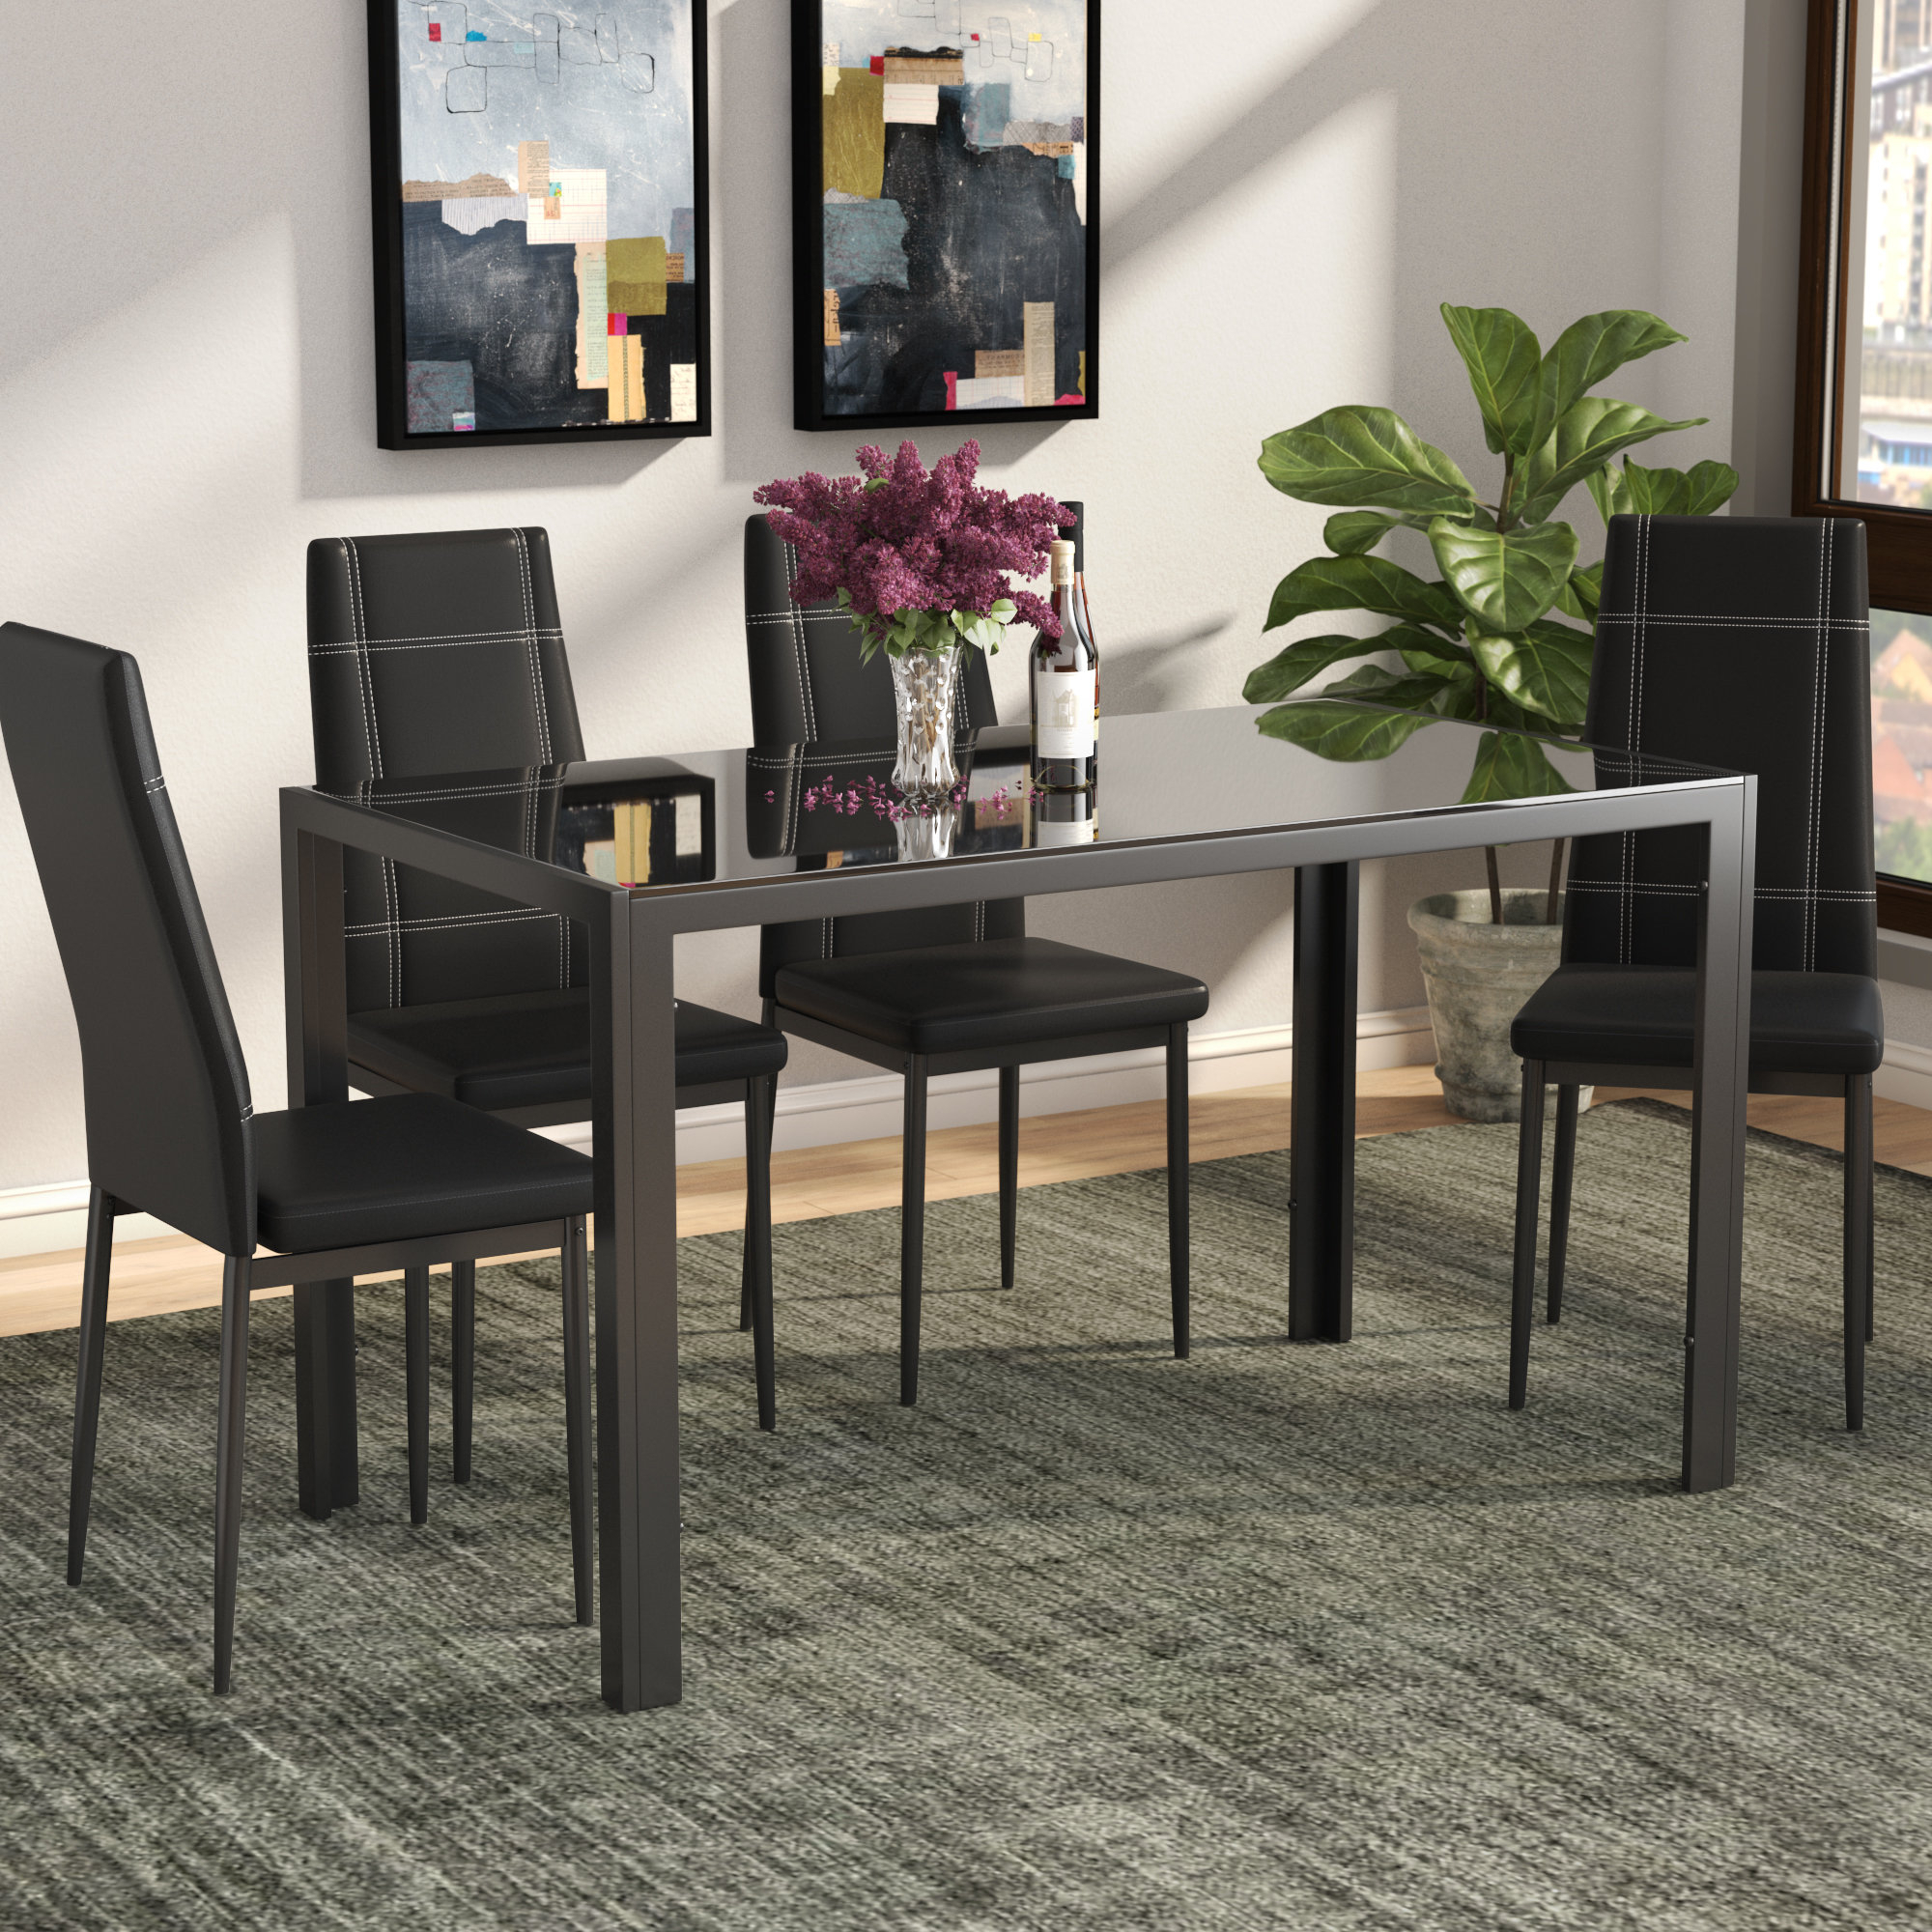 Wayfair Throughout Autberry 5 Piece Dining Sets (View 5 of 25)